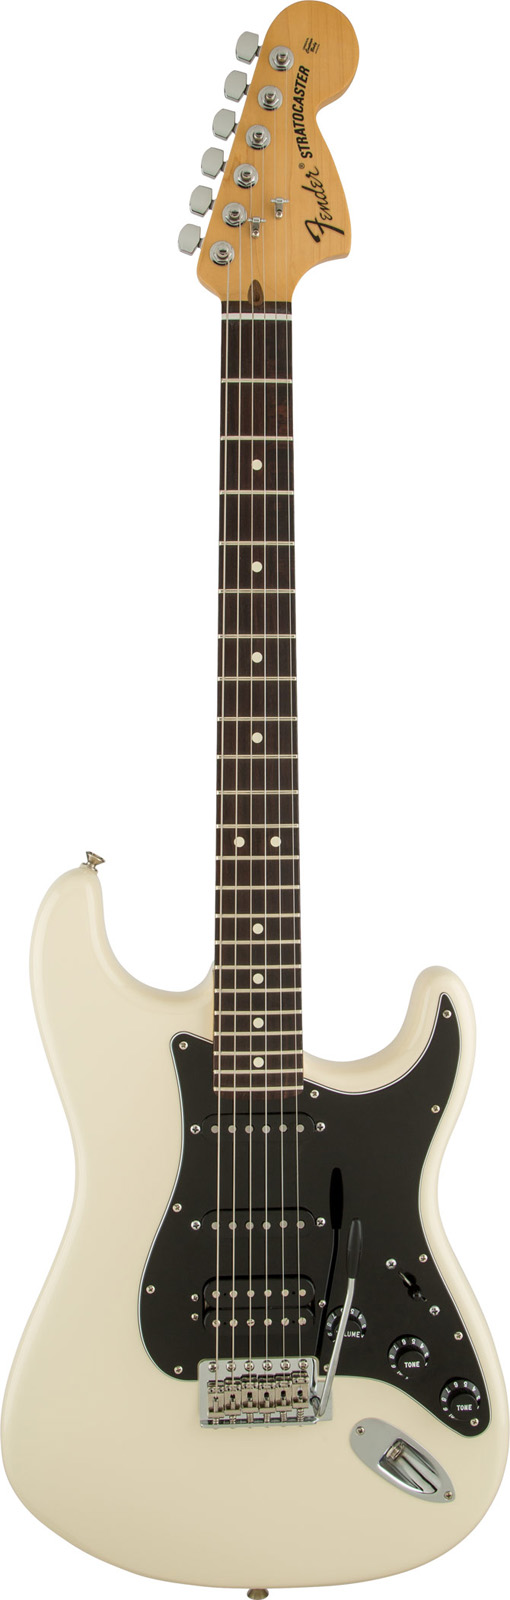 Fender Stratocaster American Special Hss Olympic White + Housse